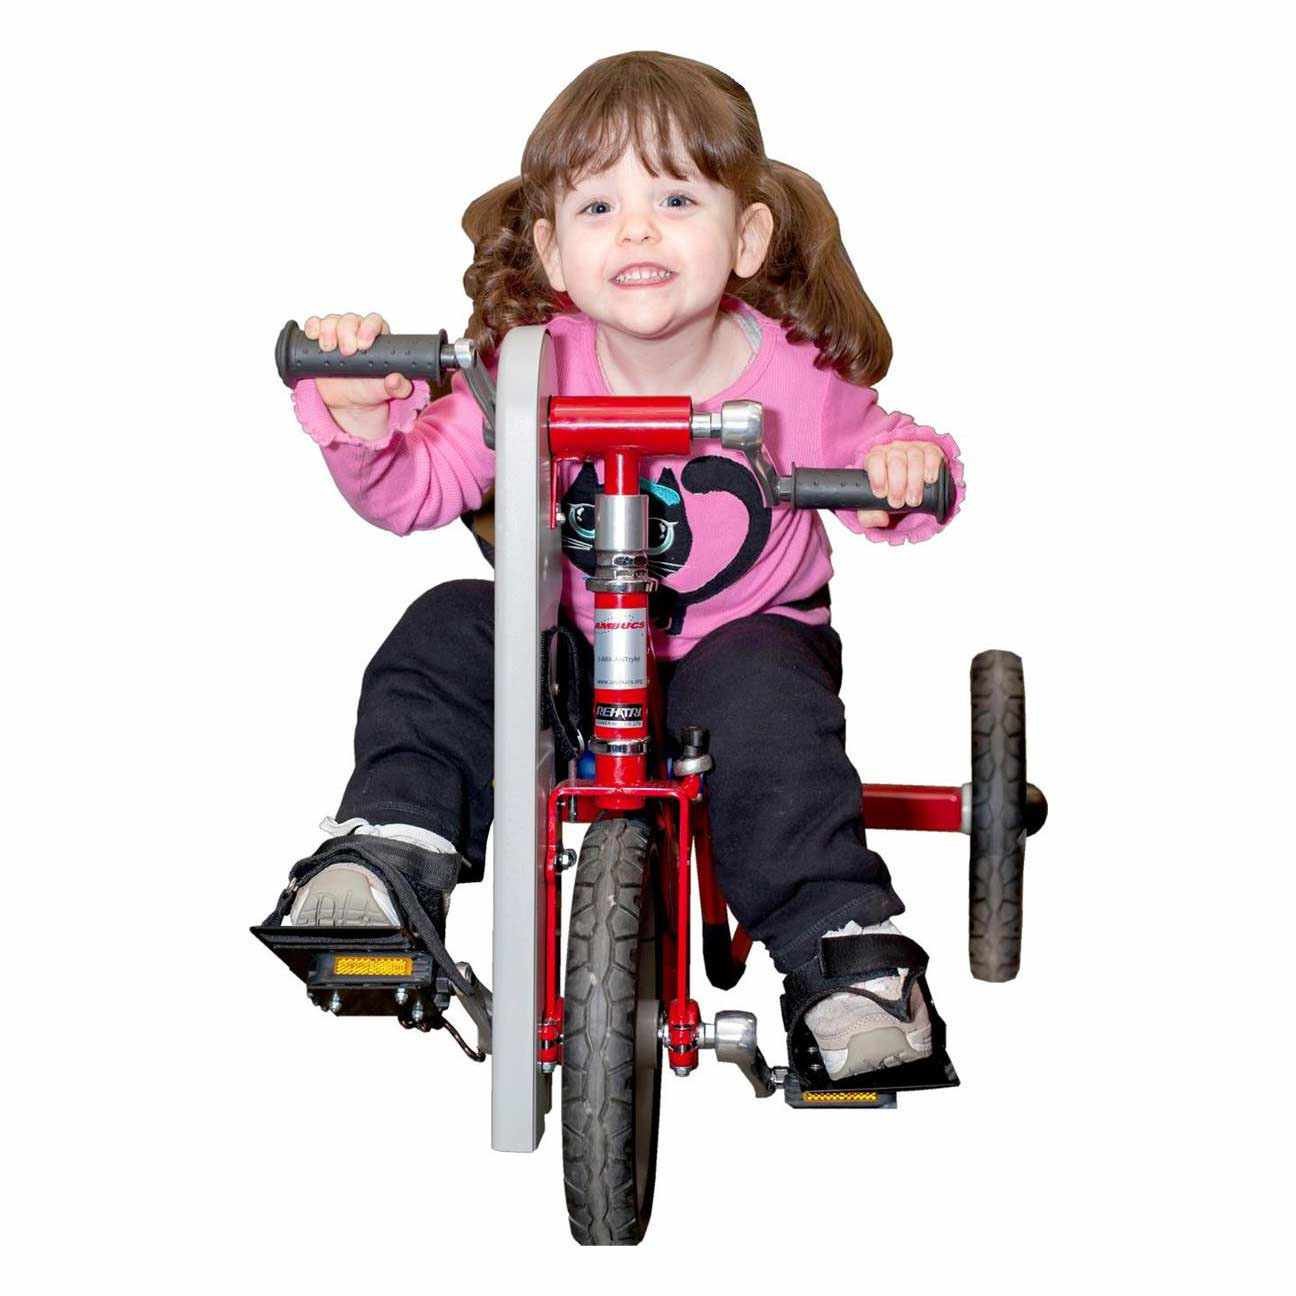 Amtryke AM-10 Hand/Foot Tricycle | Amtryke Tricycles - Medicaleshop